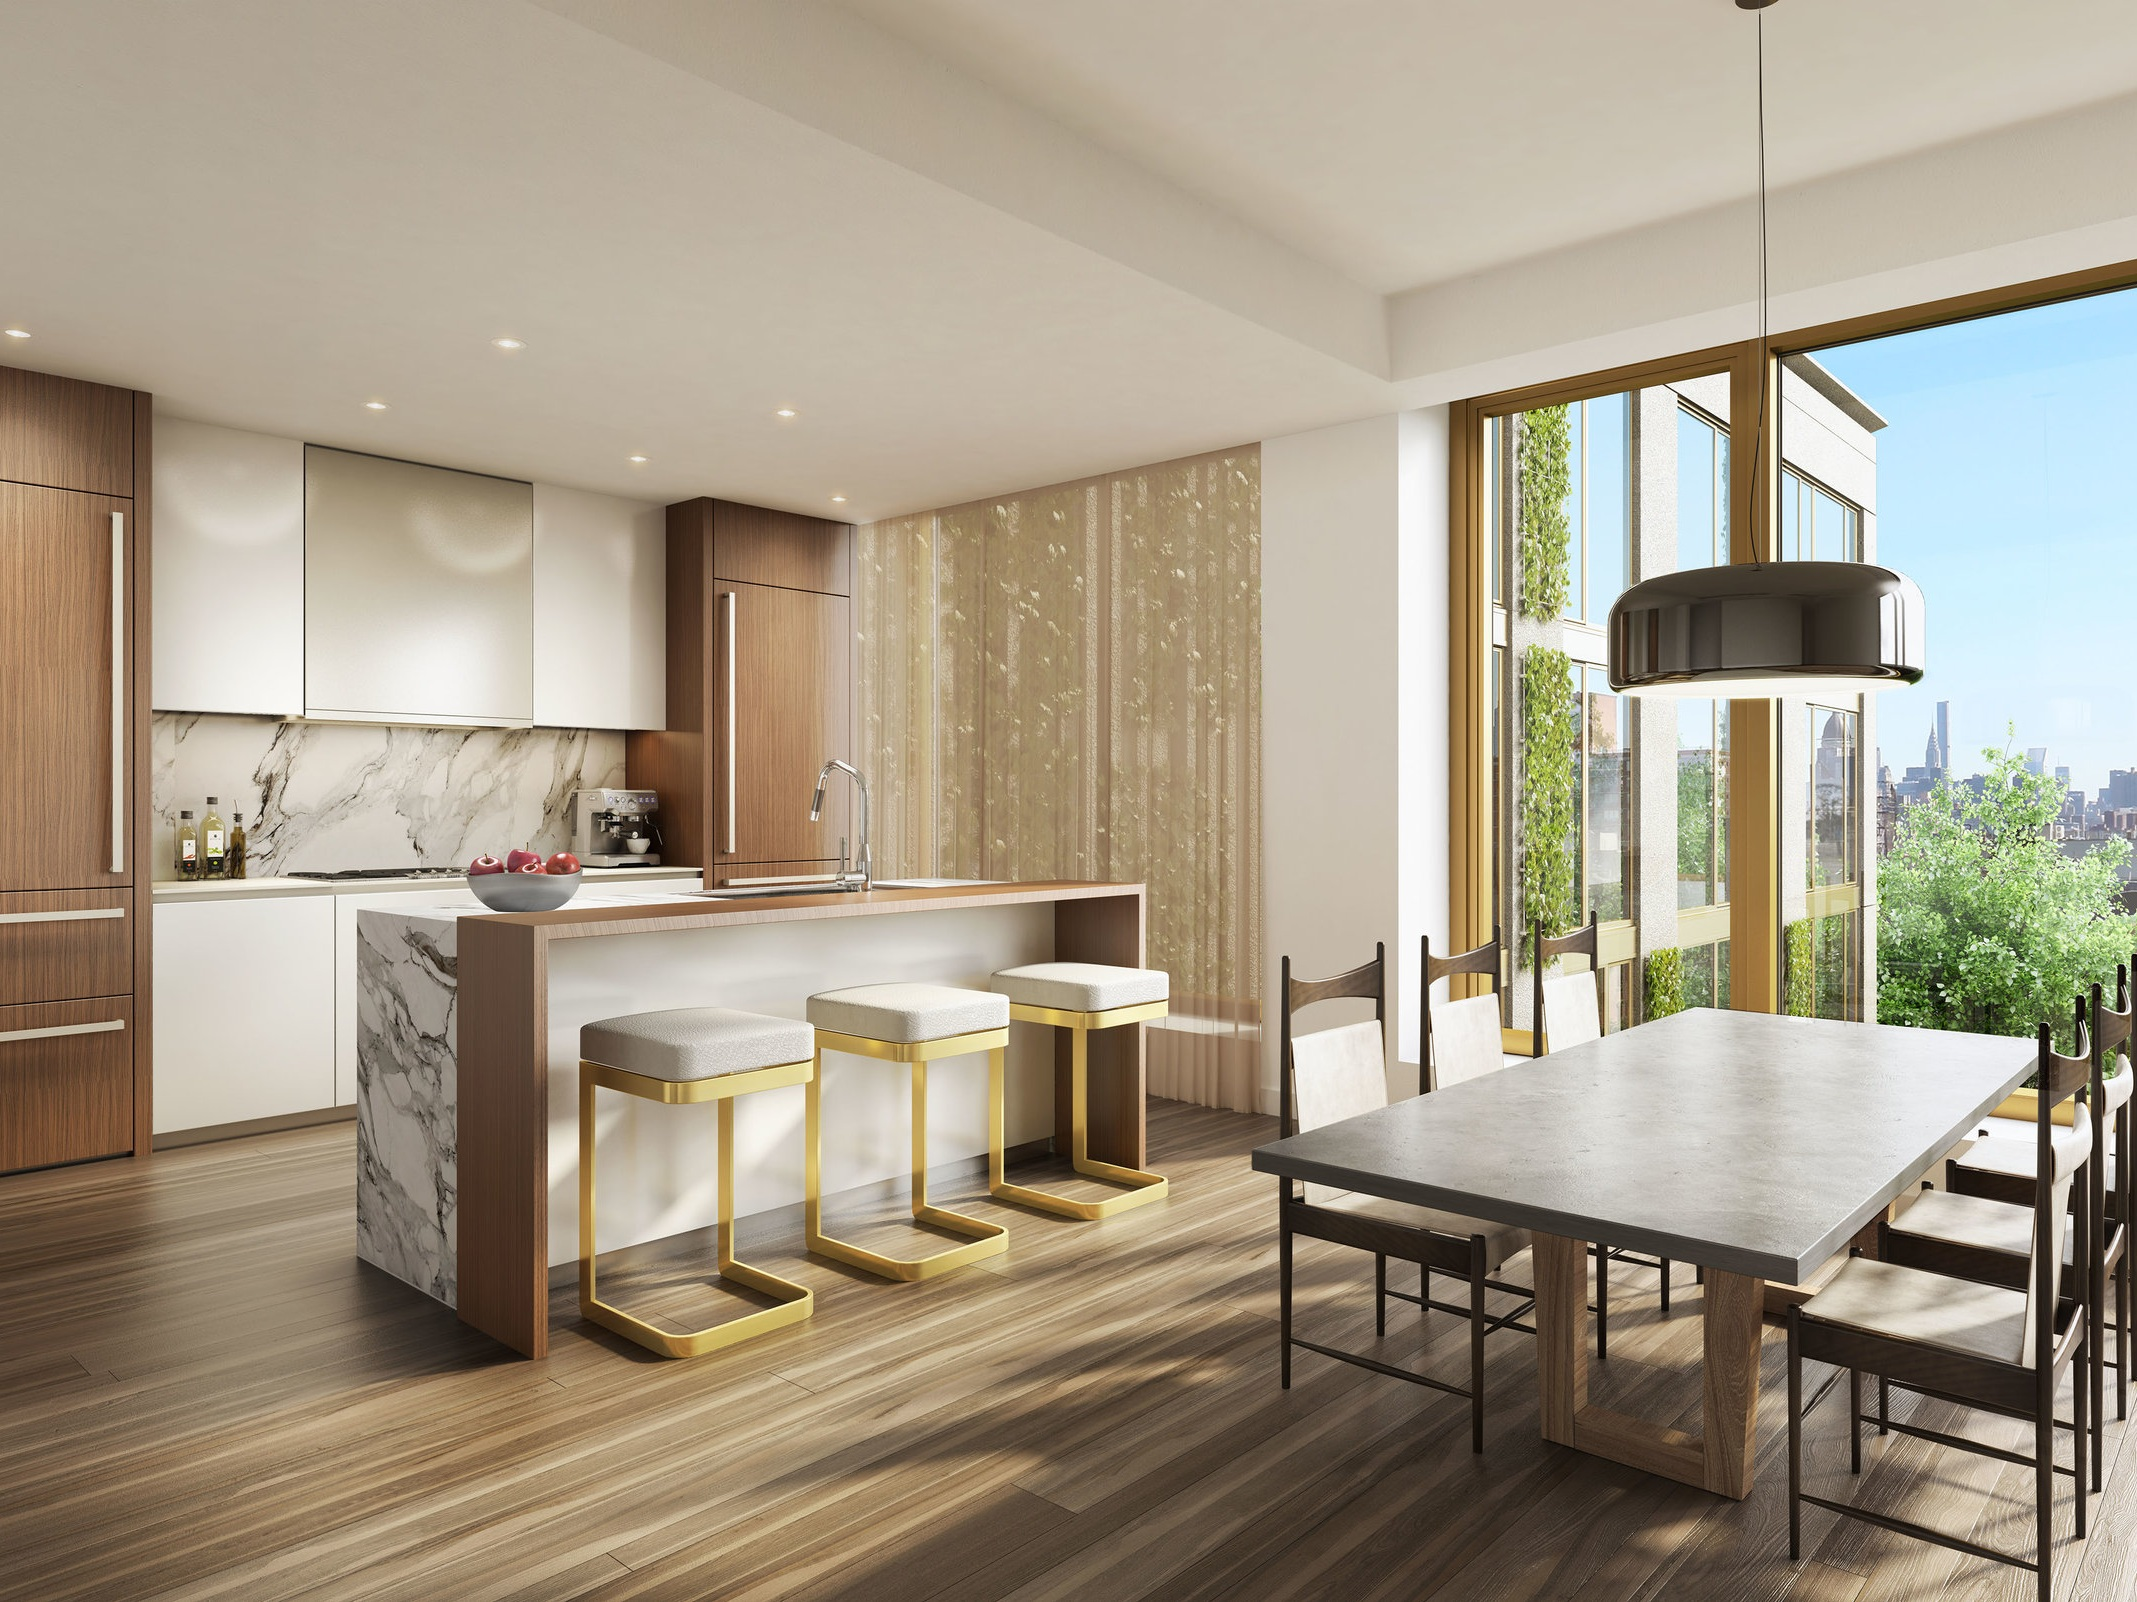 This luxurious Manhattan condo is crafted by rock and roll icon Lenny Kravitz - November 16, 2018 | Elle DecorThere is a palpable sense of luxury as this brand new residential building on the corner of Manhattan's NoLita neighbourhood opens its doors to us. The project, called 75 …Read More